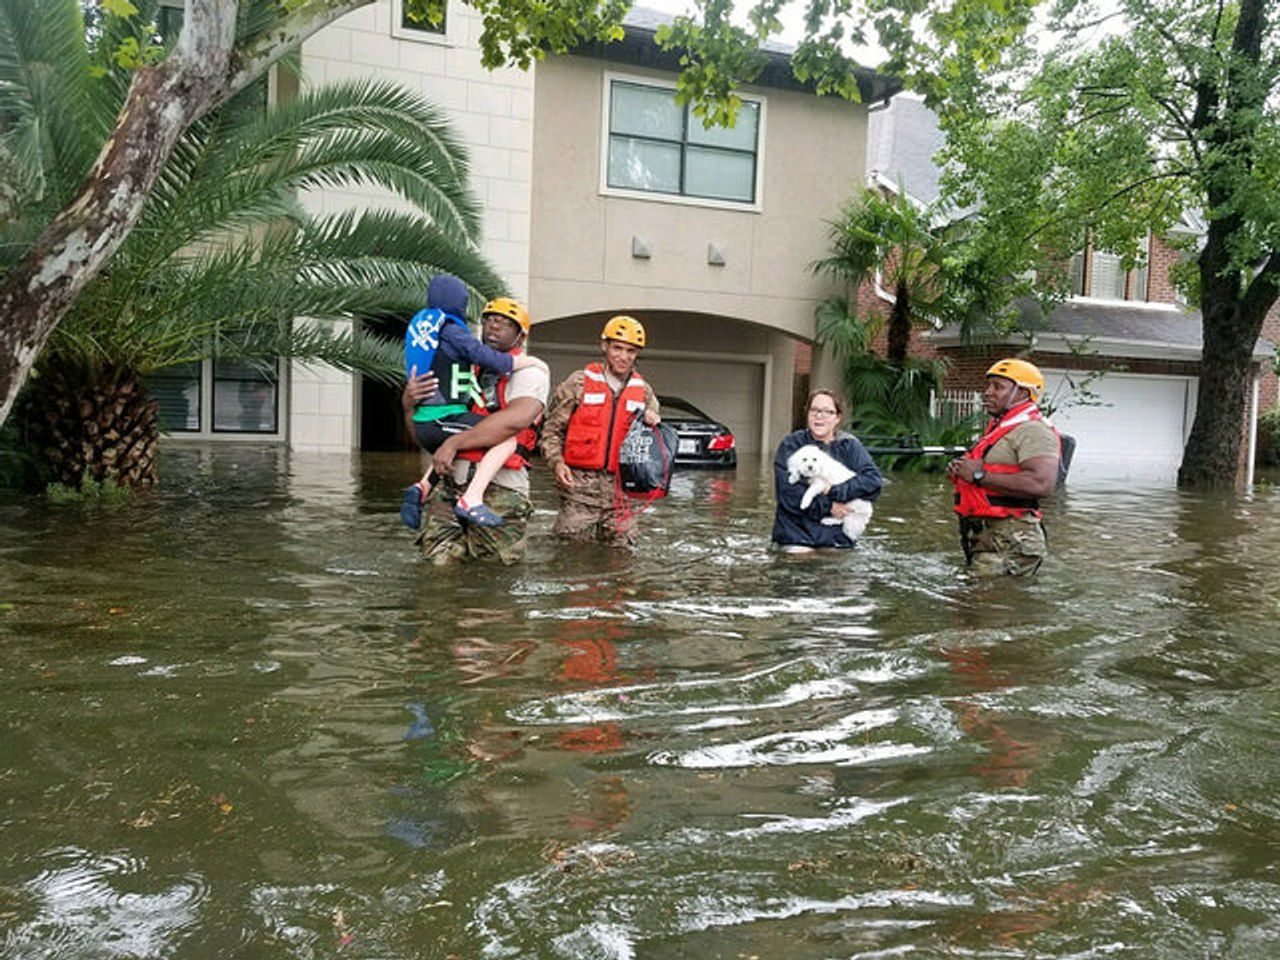 An estimated 17,000 people have been evacuated in the Houstn, USA disaster area. (Photo by Lt. Zachary West, 100th MPAD)